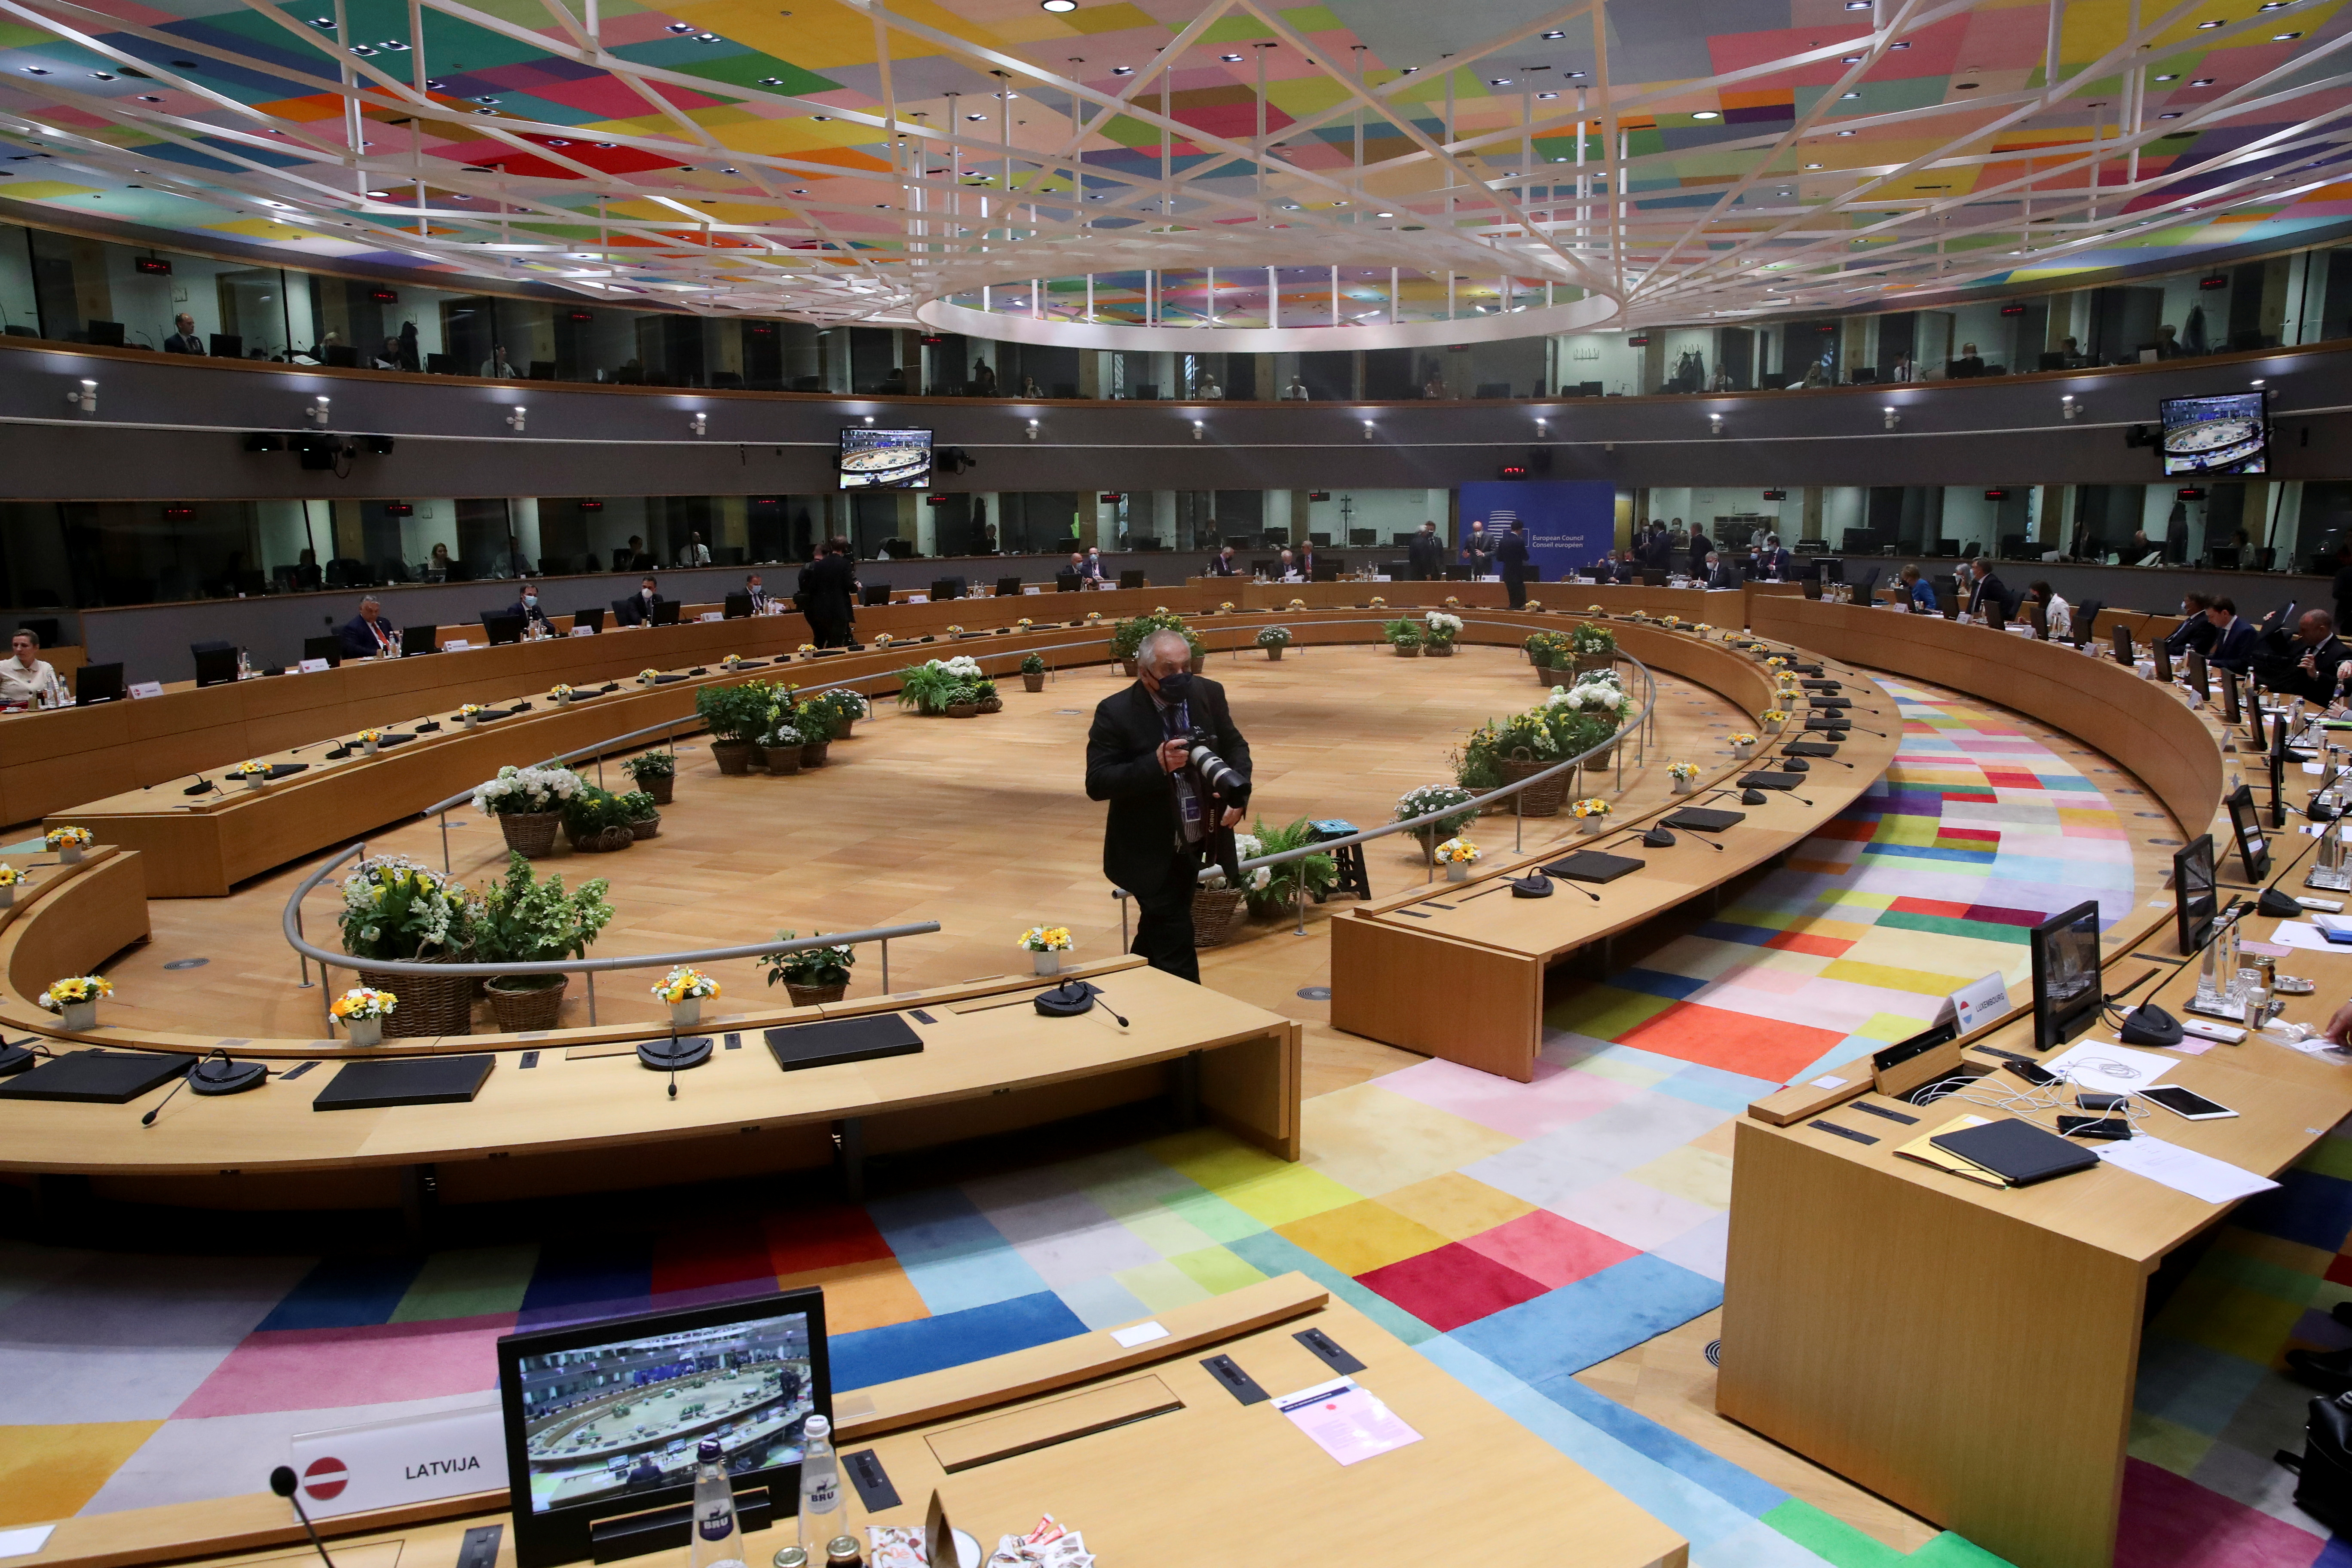 A general view of the conference room for the EU summit meeting, in Brussels, Belgium, May 24, 2021. REUTERS/Yves Herman/Pool